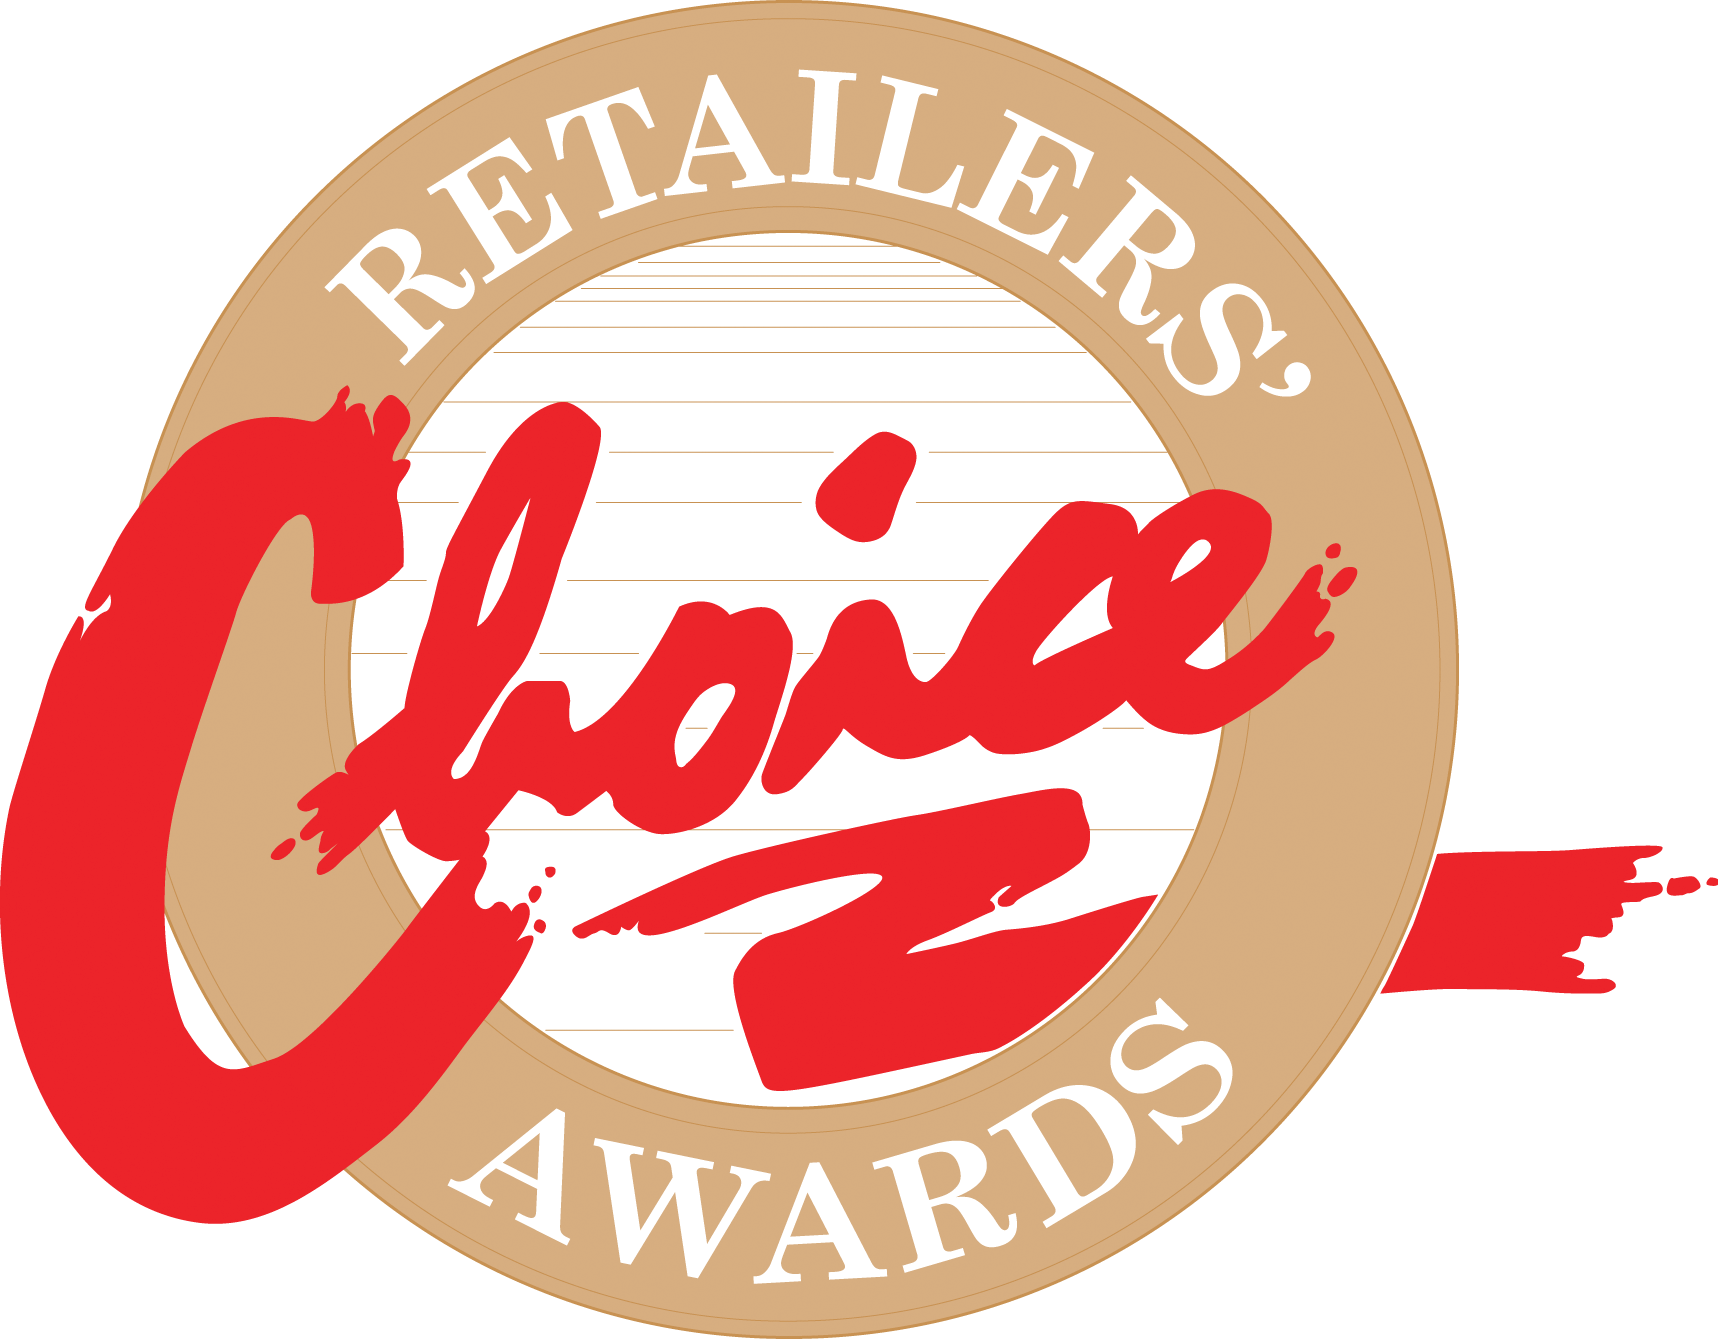 Stump Chunks Kindling & Firestarter is the winner of the 2016 Retail Choice Awards